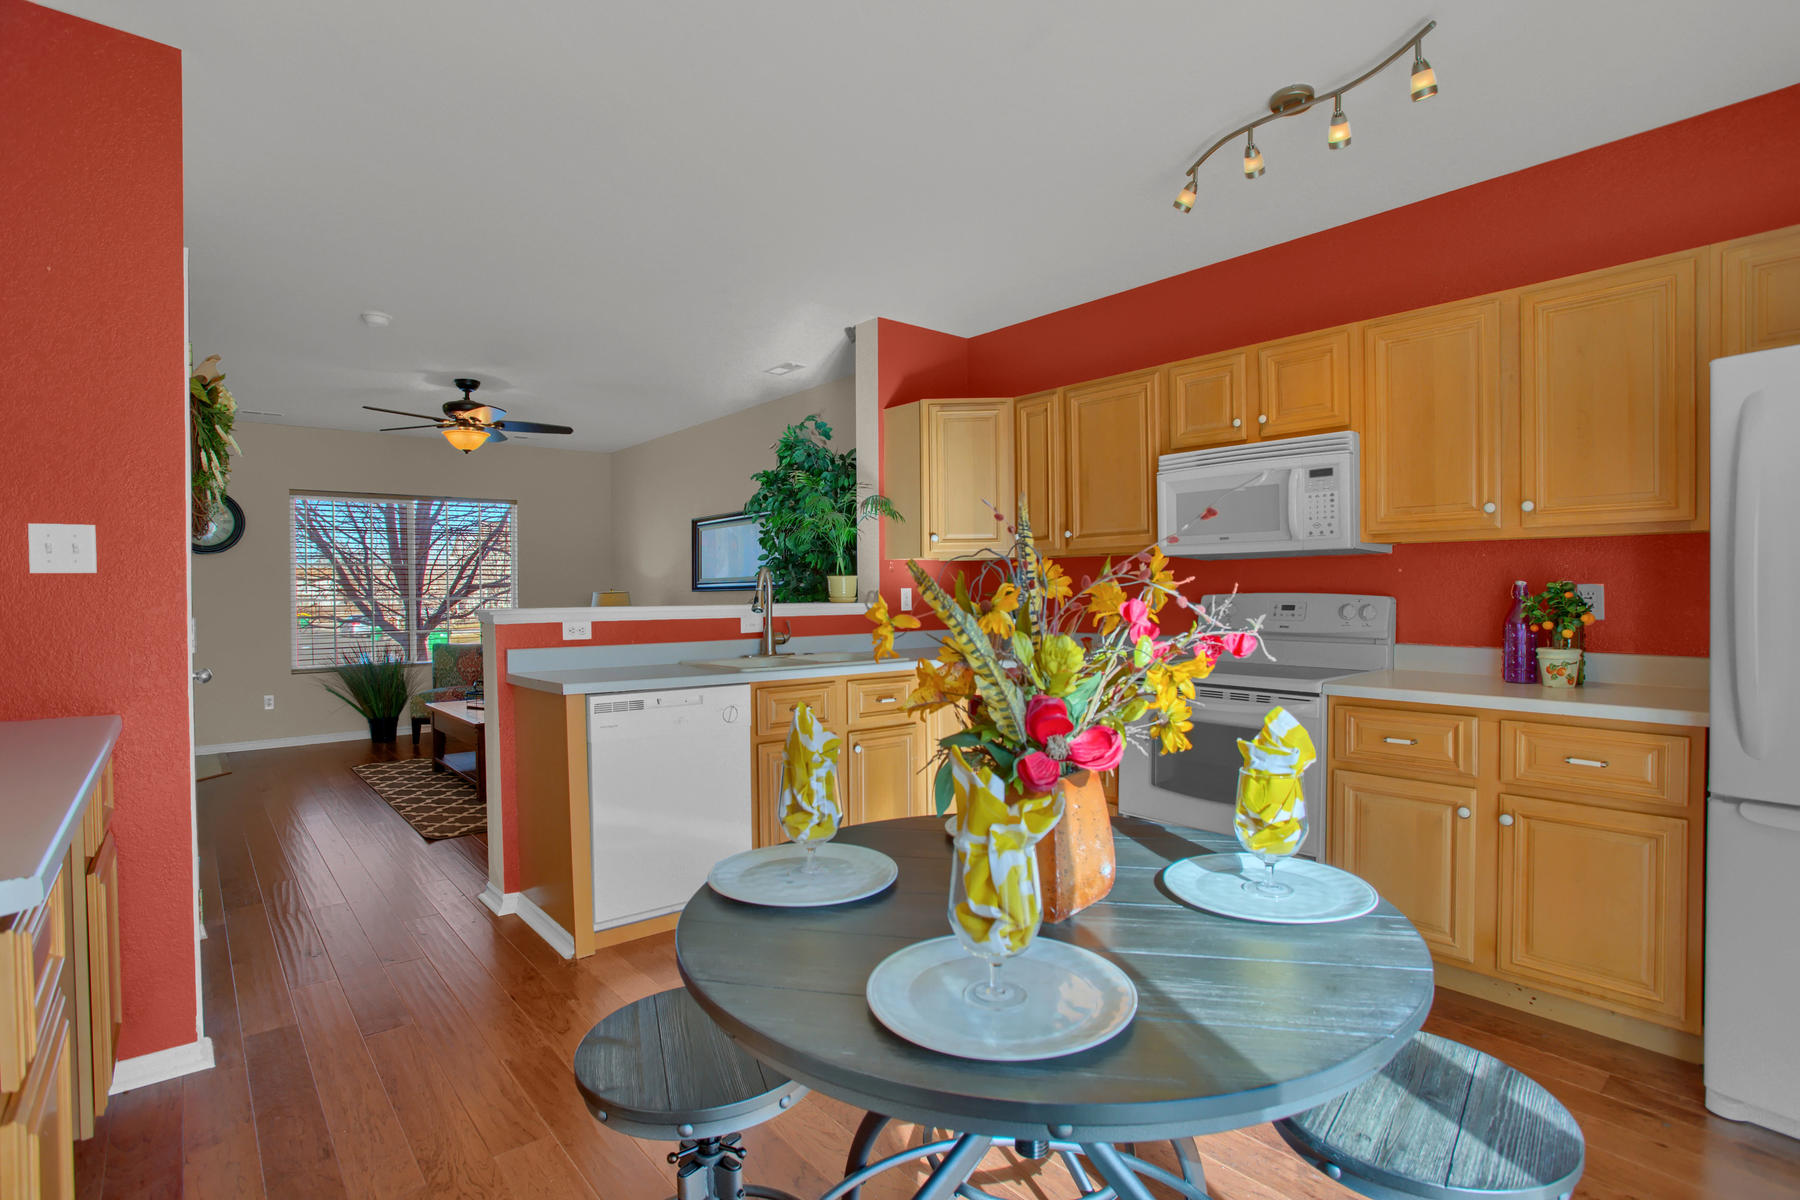 11662 Oakland Dr Commerce City-010-11-Eating Area-MLS_Size.jpg